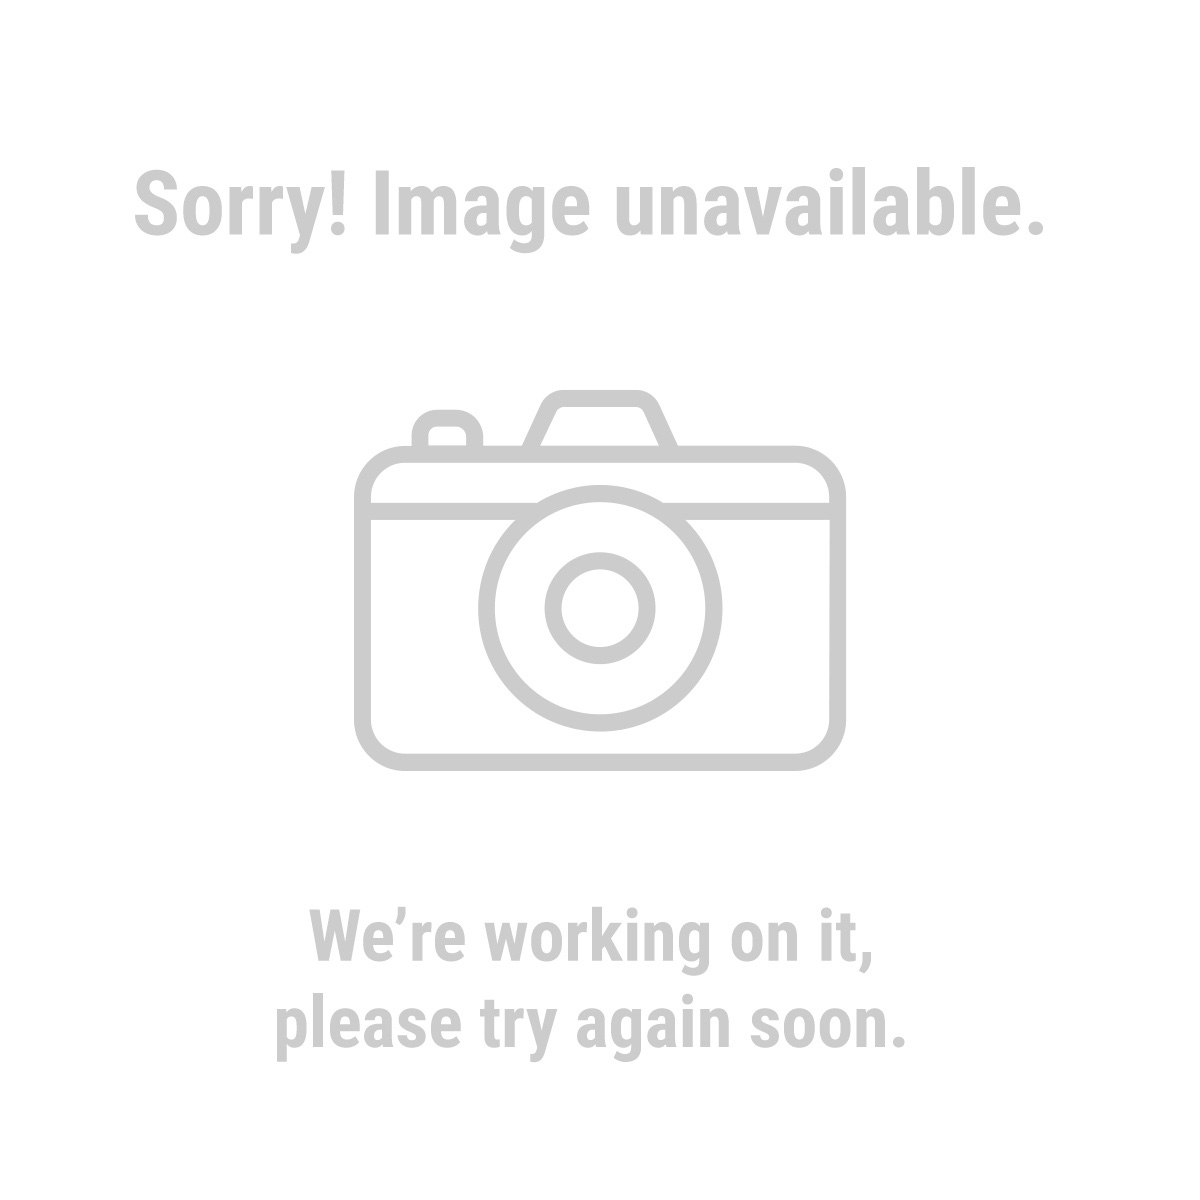 Warrior 61216 9 in. 24 Grit Metal Grinding Wheel 5 Pc